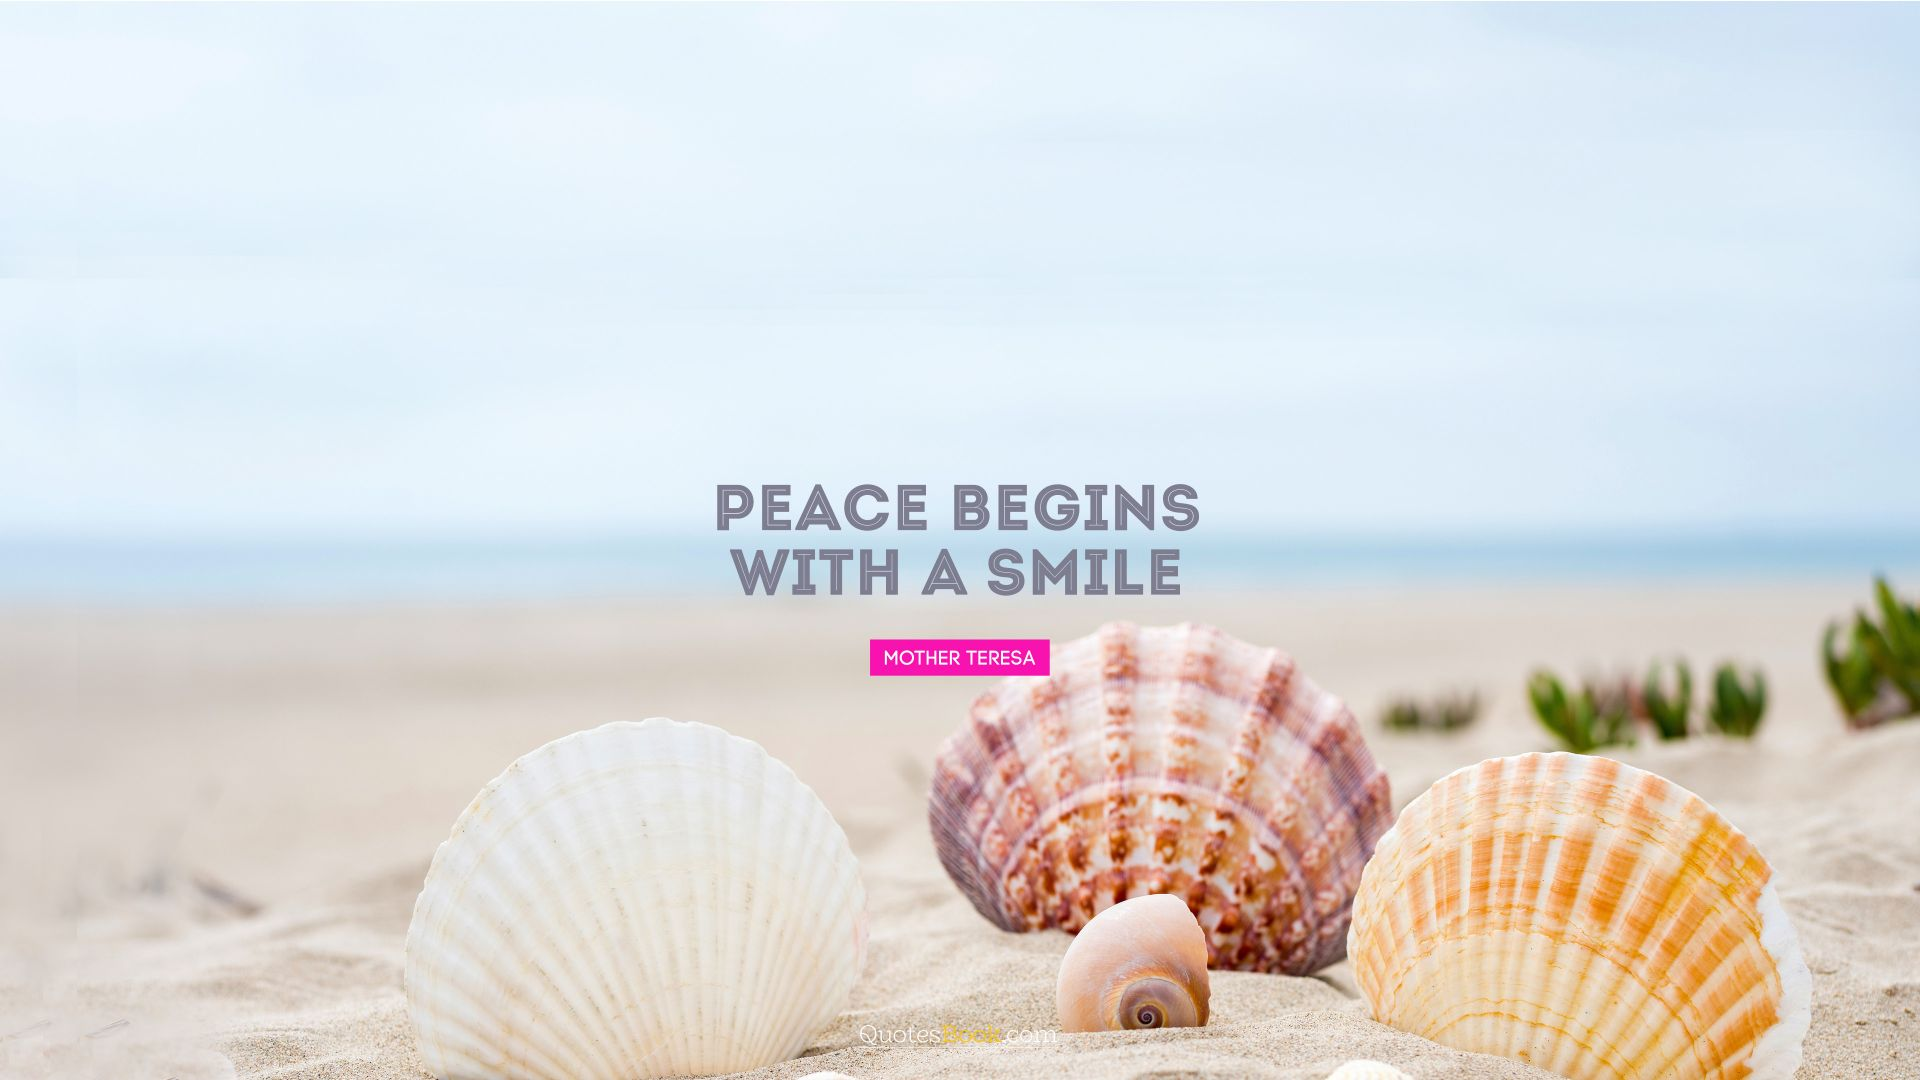 Peace begins with a smile. - Quote by Mother Teresa